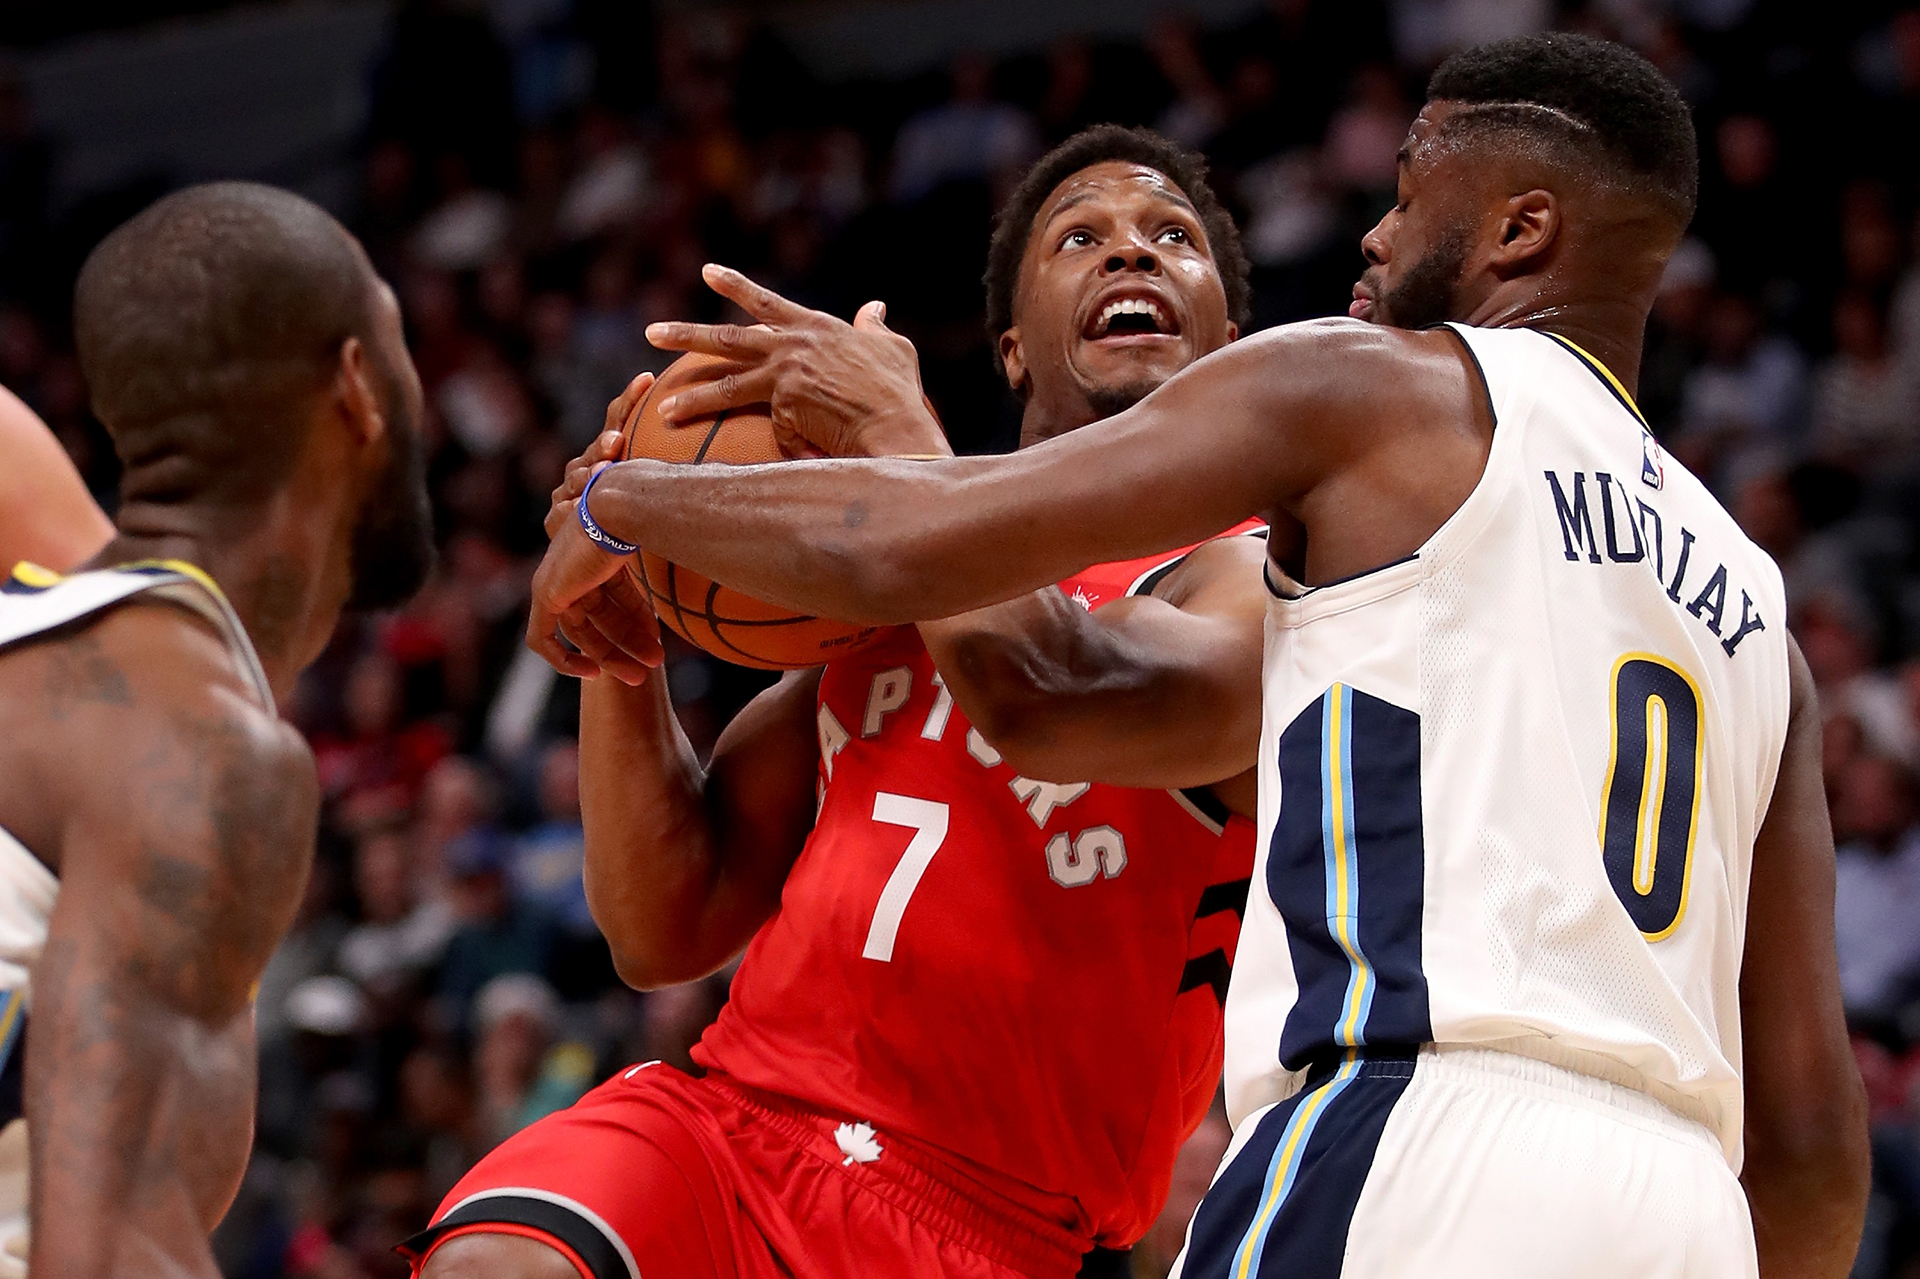 Raptors fall hard to Nuggets in Denver